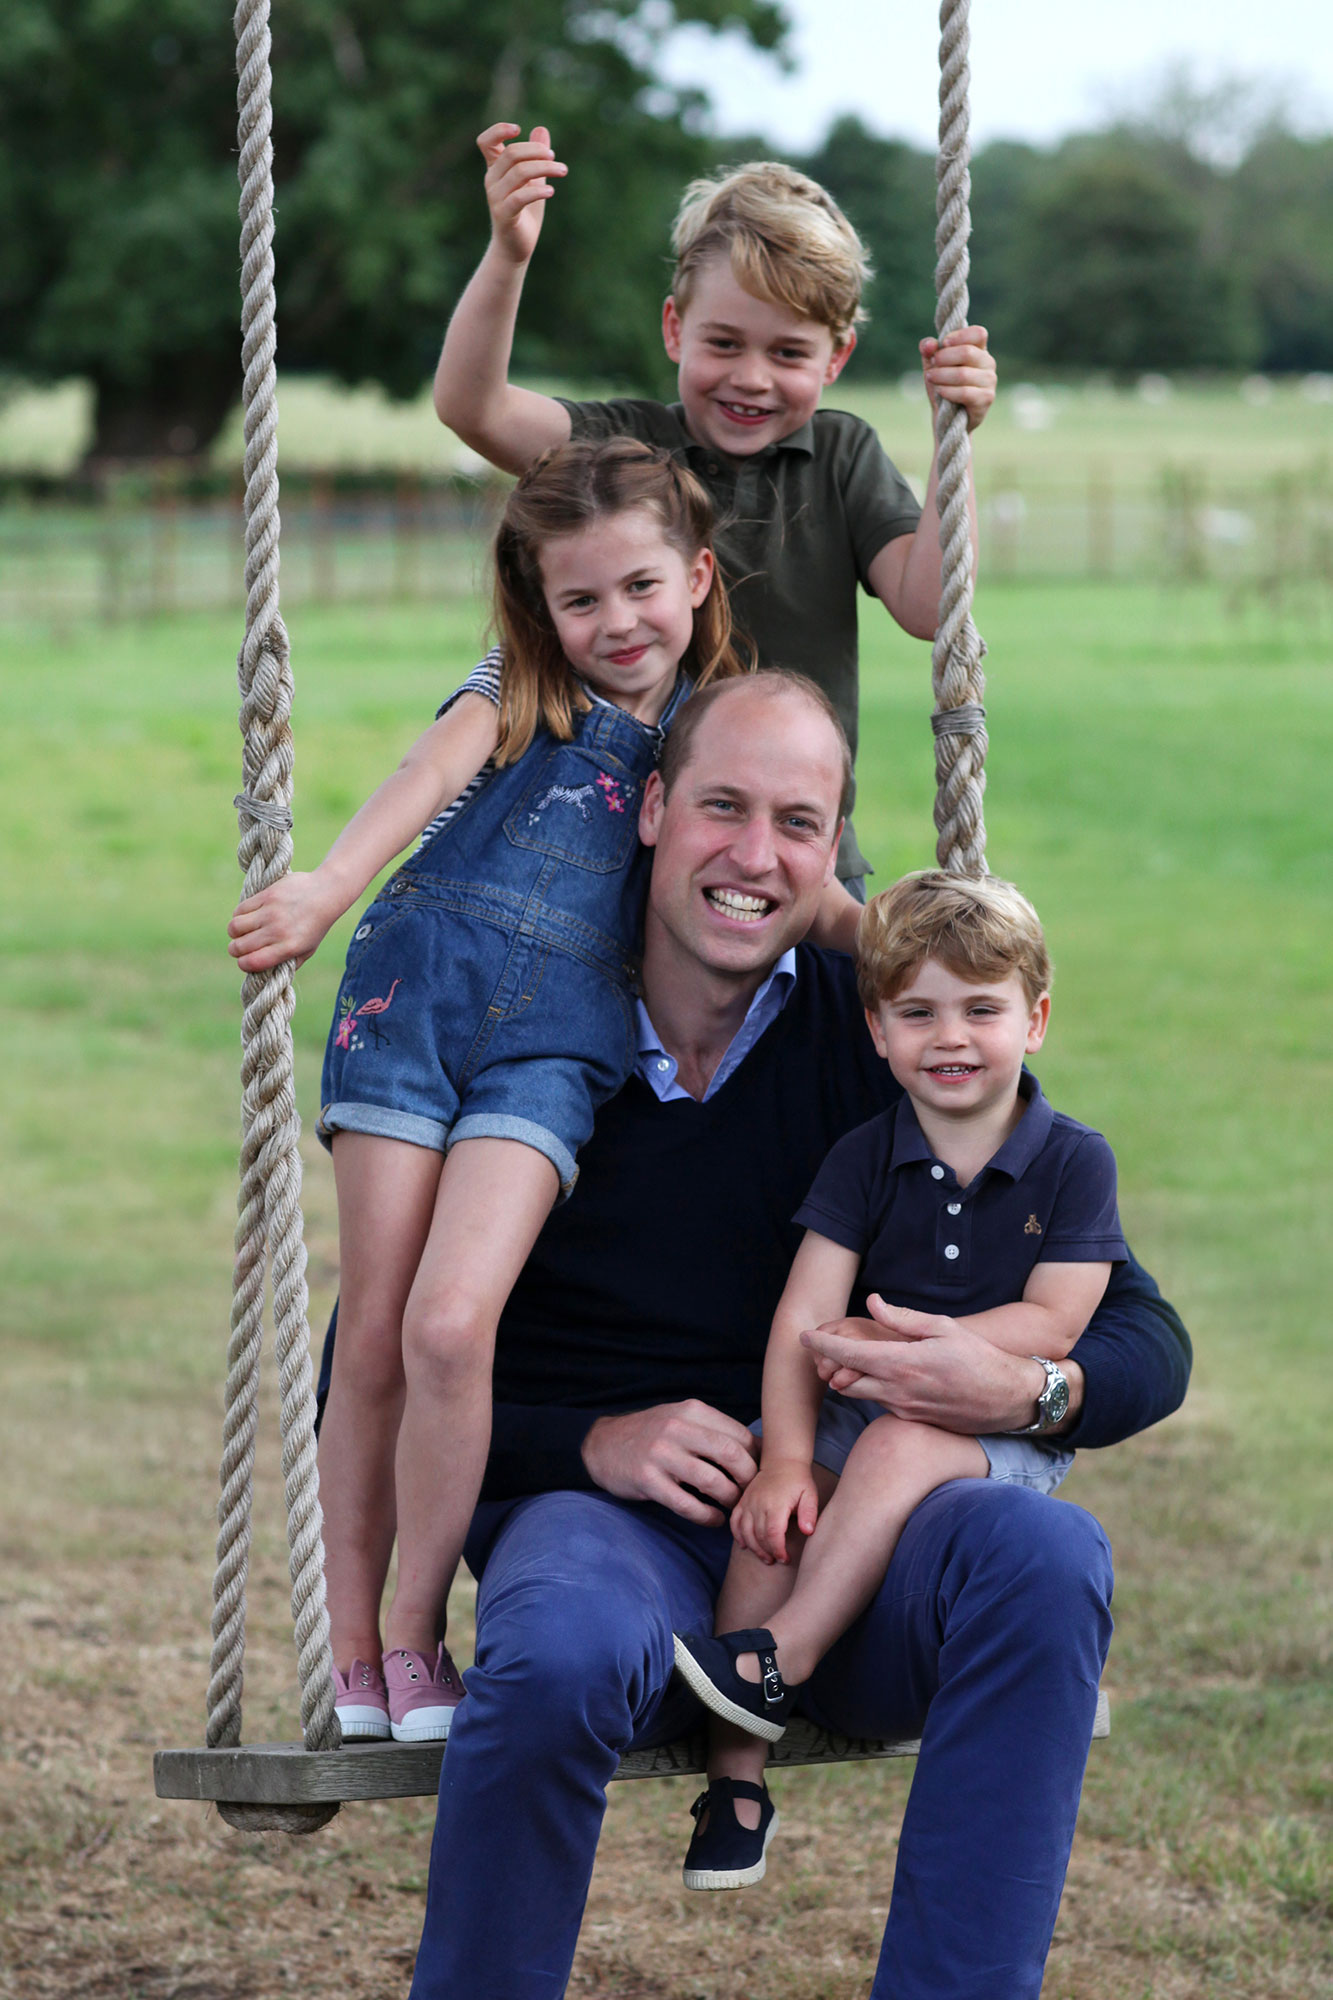 Prince William and kids on swing